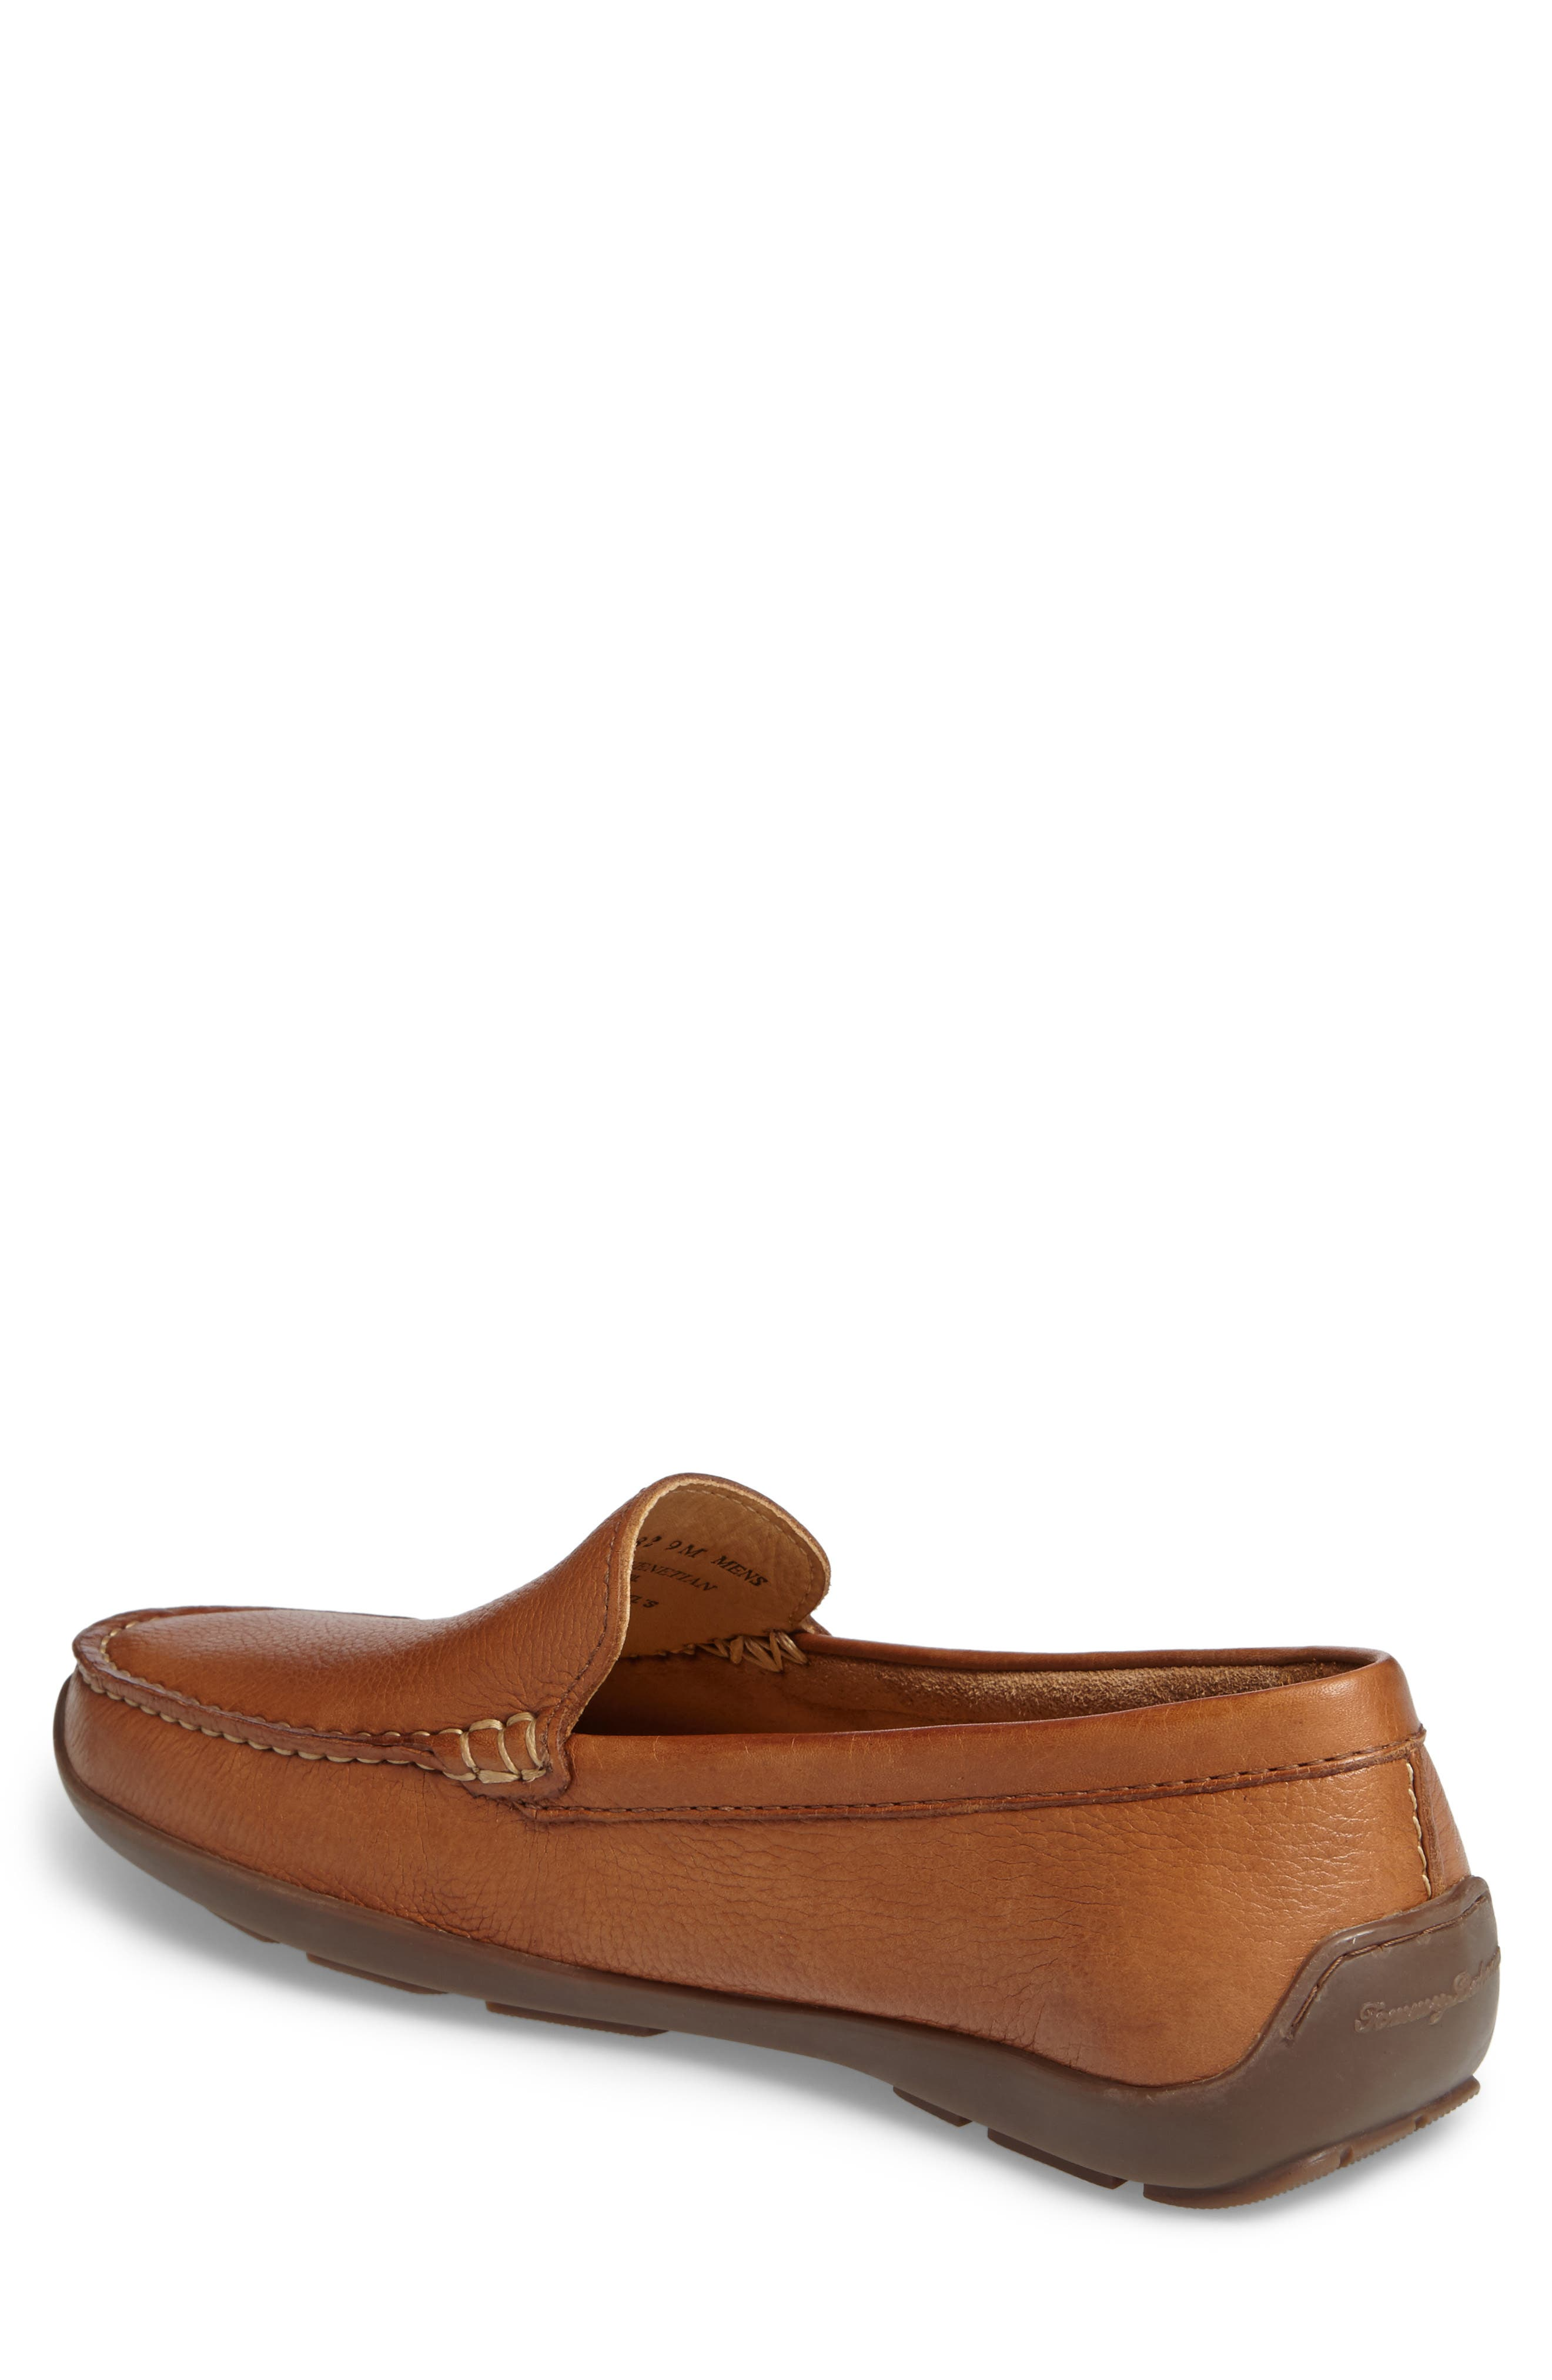 Orion Venetian Loafer,                             Alternate thumbnail 2, color,                             TAN LEATHER